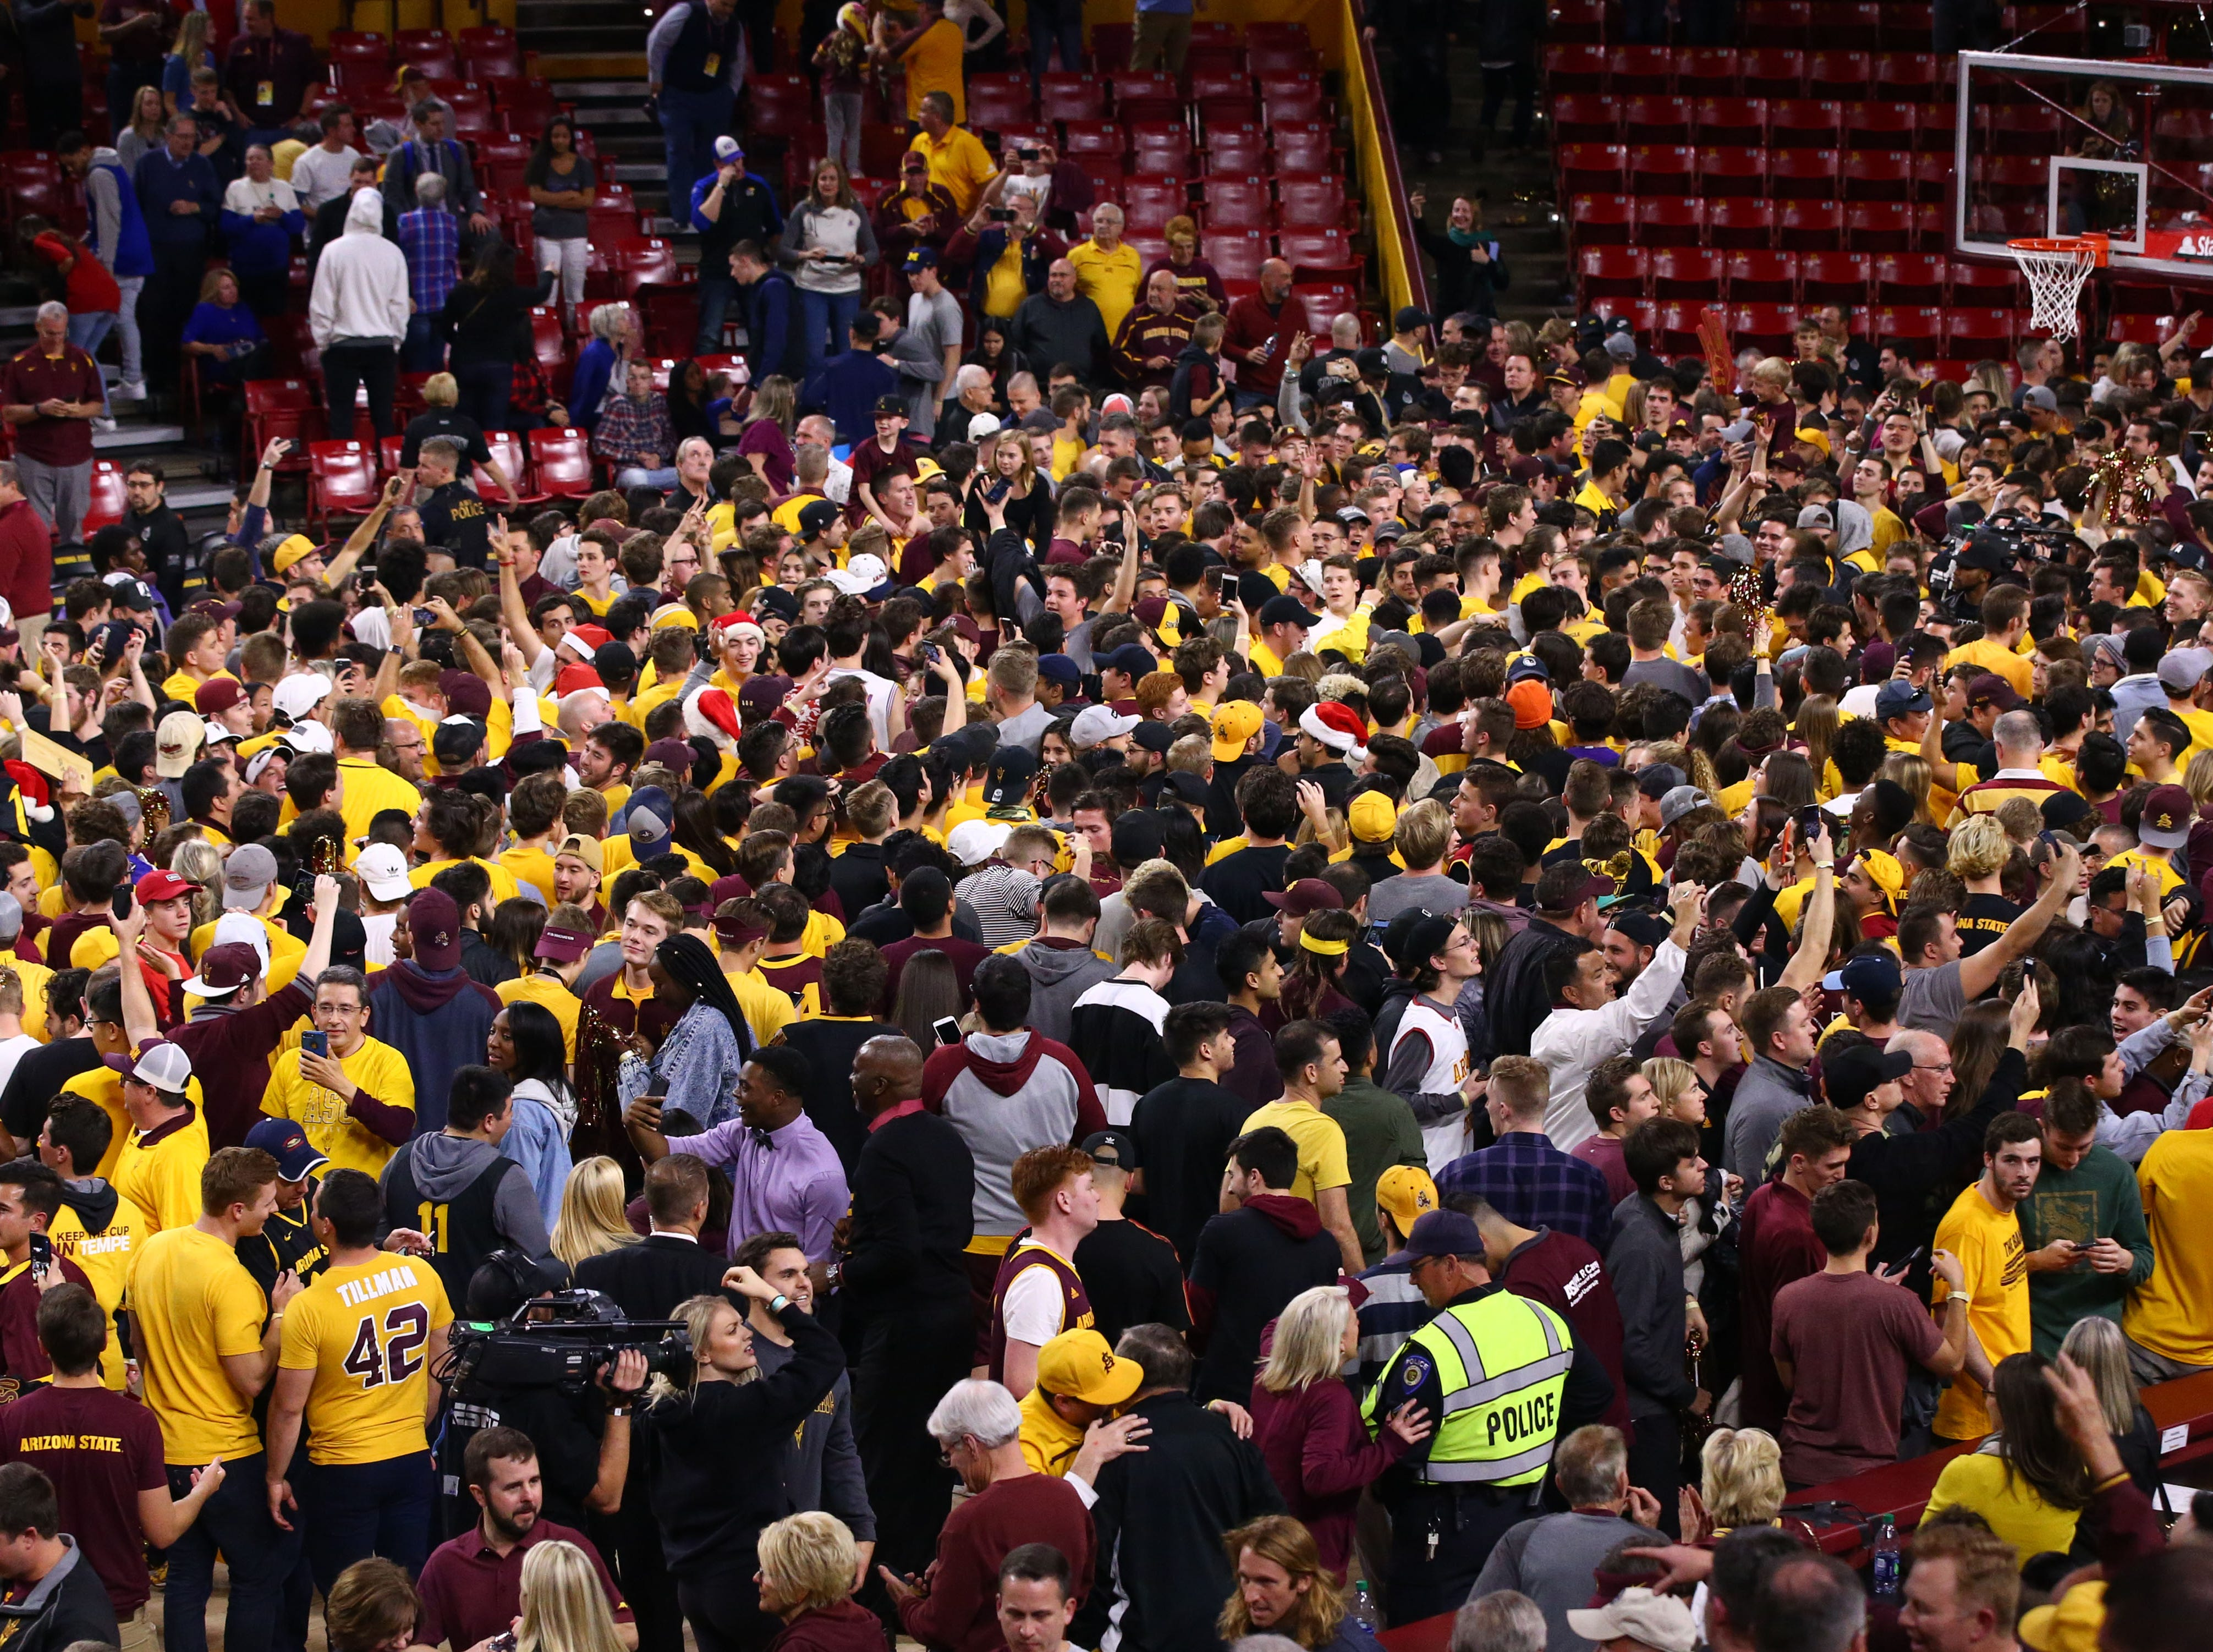 Arizona State fans rush the court after defeating Kansas on Dec. 22 at Wells Fargo Arena.